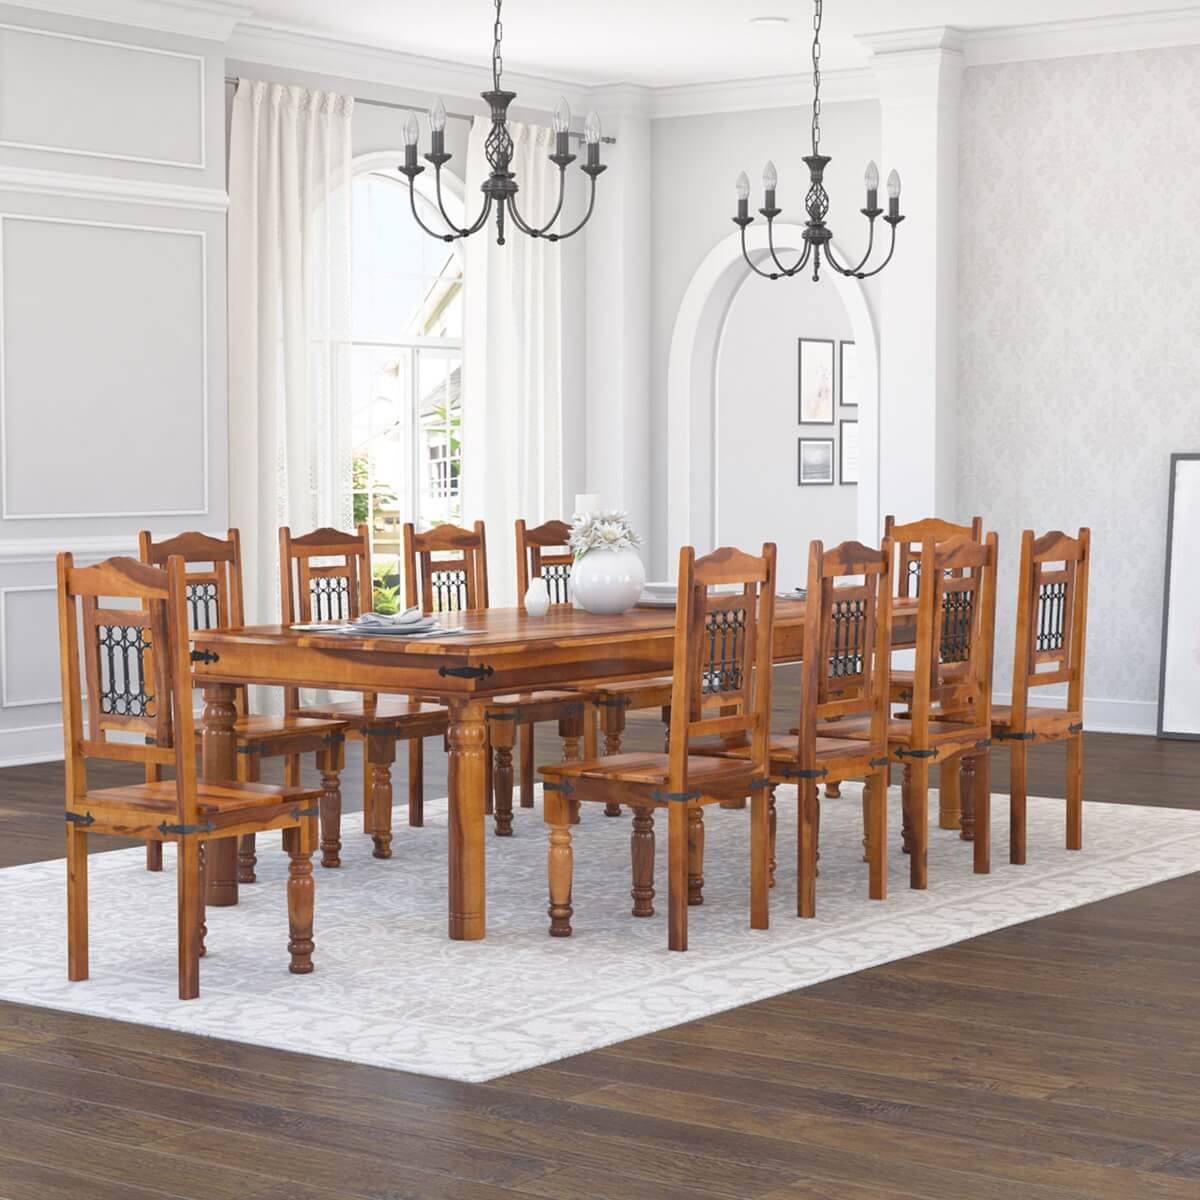 Beautiful San Francisco Rustic Furniture Large Dining Table With 10 Chairs Set